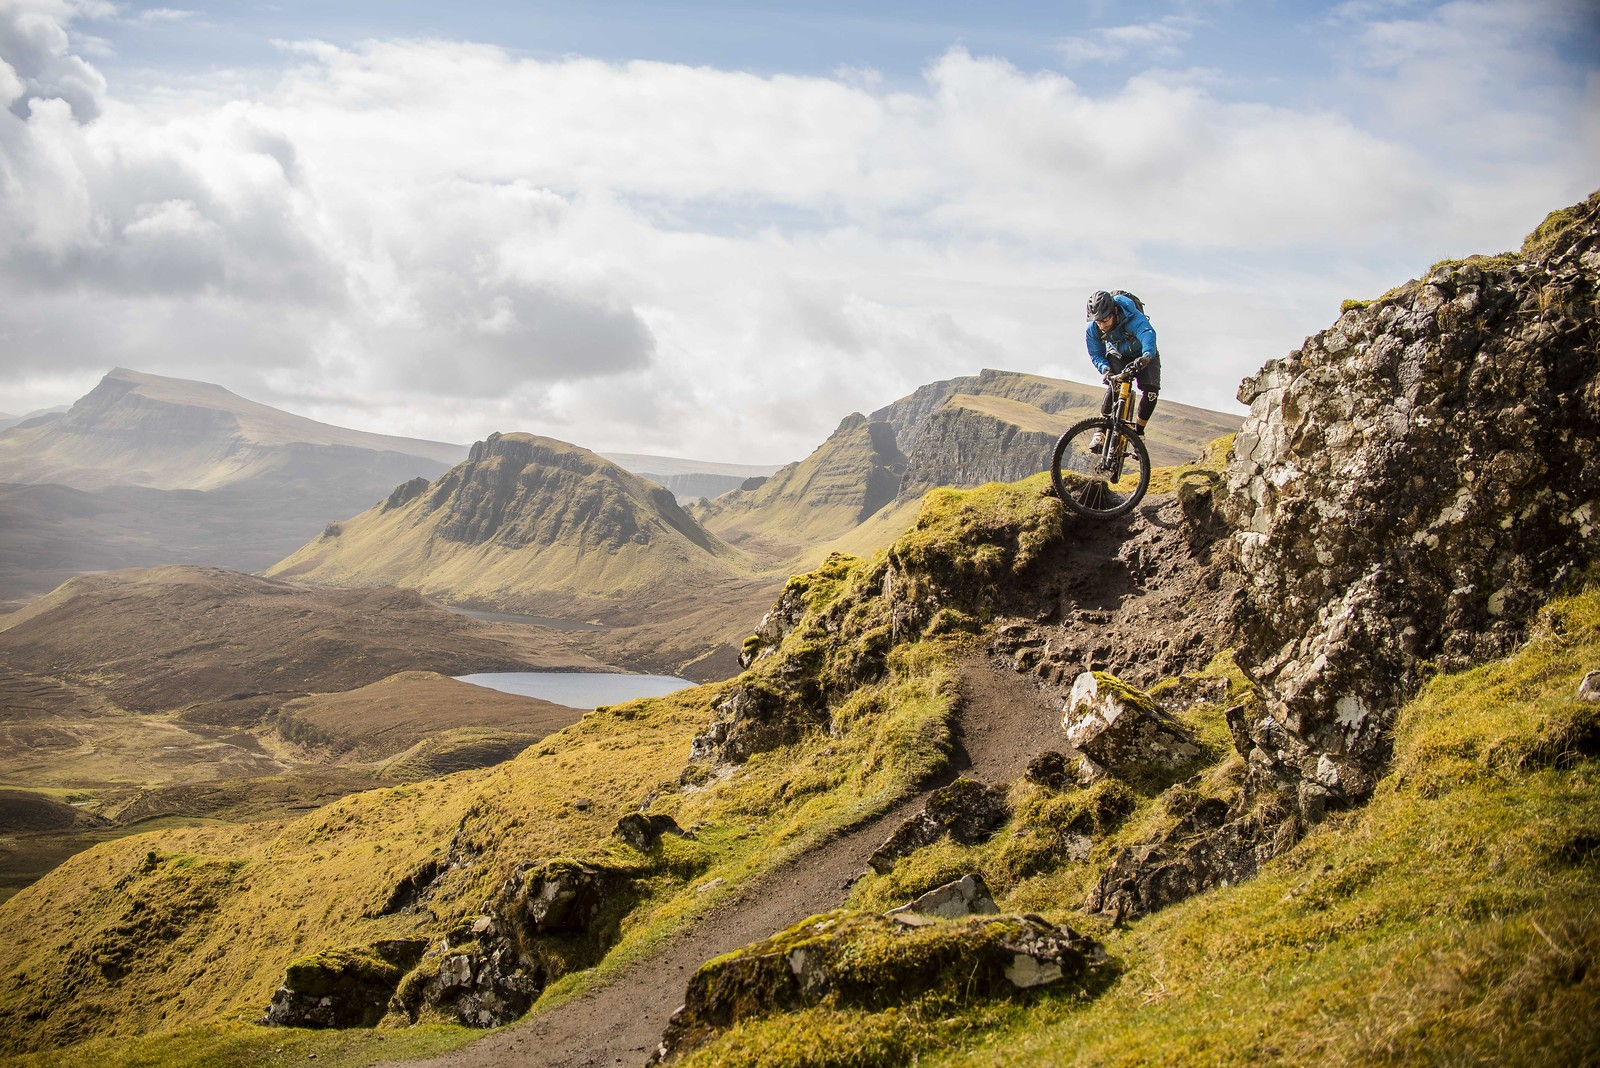 Finding flow in the Quiraing  - matttomlinsonphoto - Mountain Biking Pictures - Vital MTB